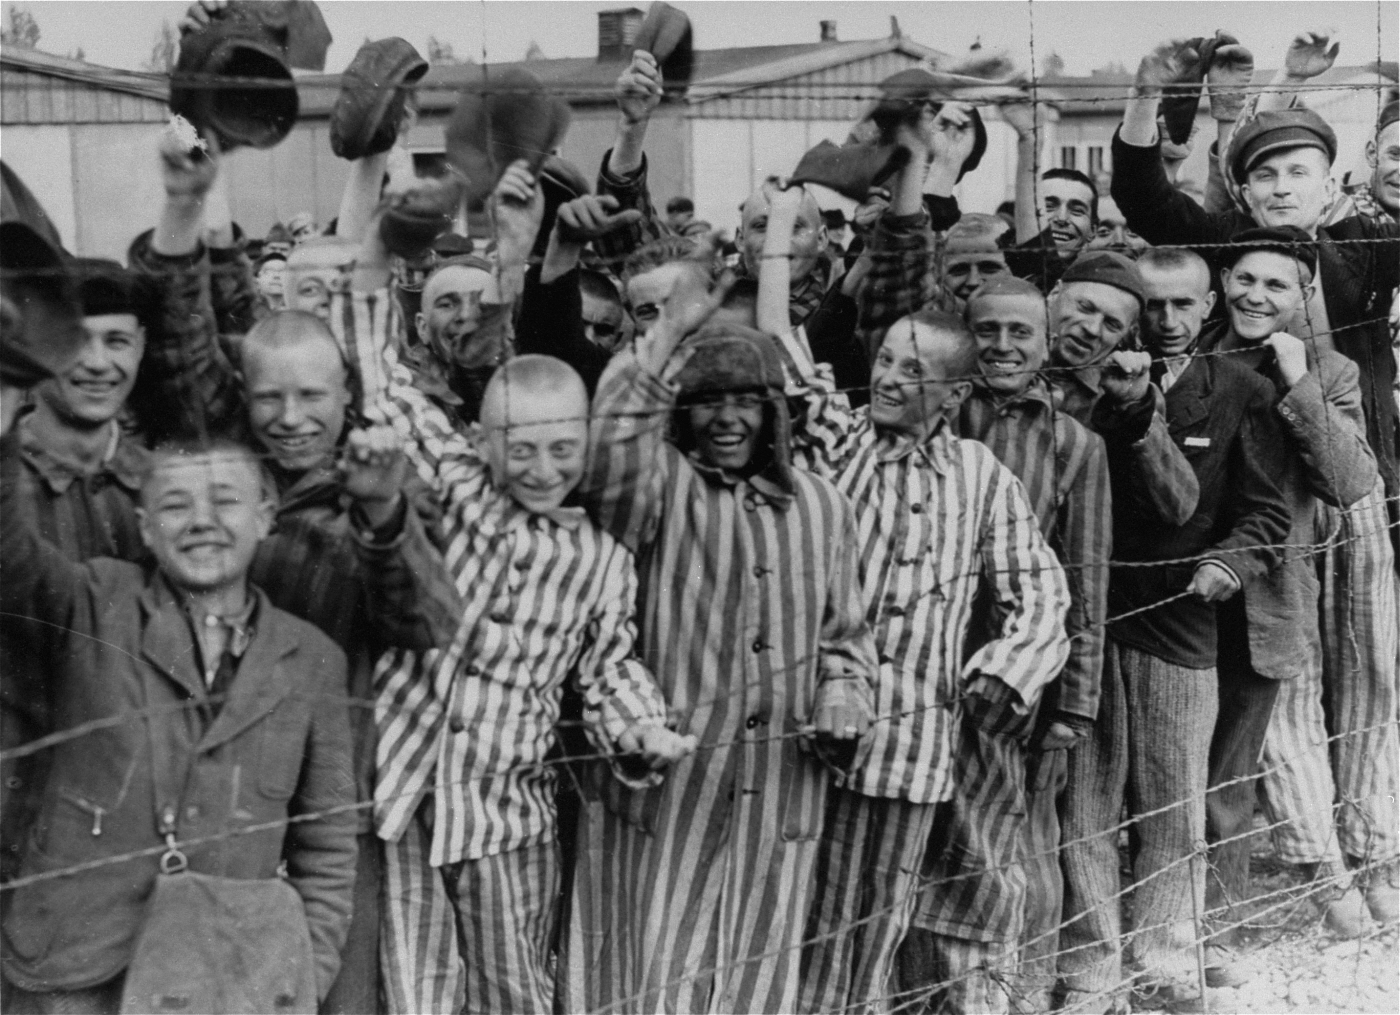 File:Prisoners liberation dachau.jpg